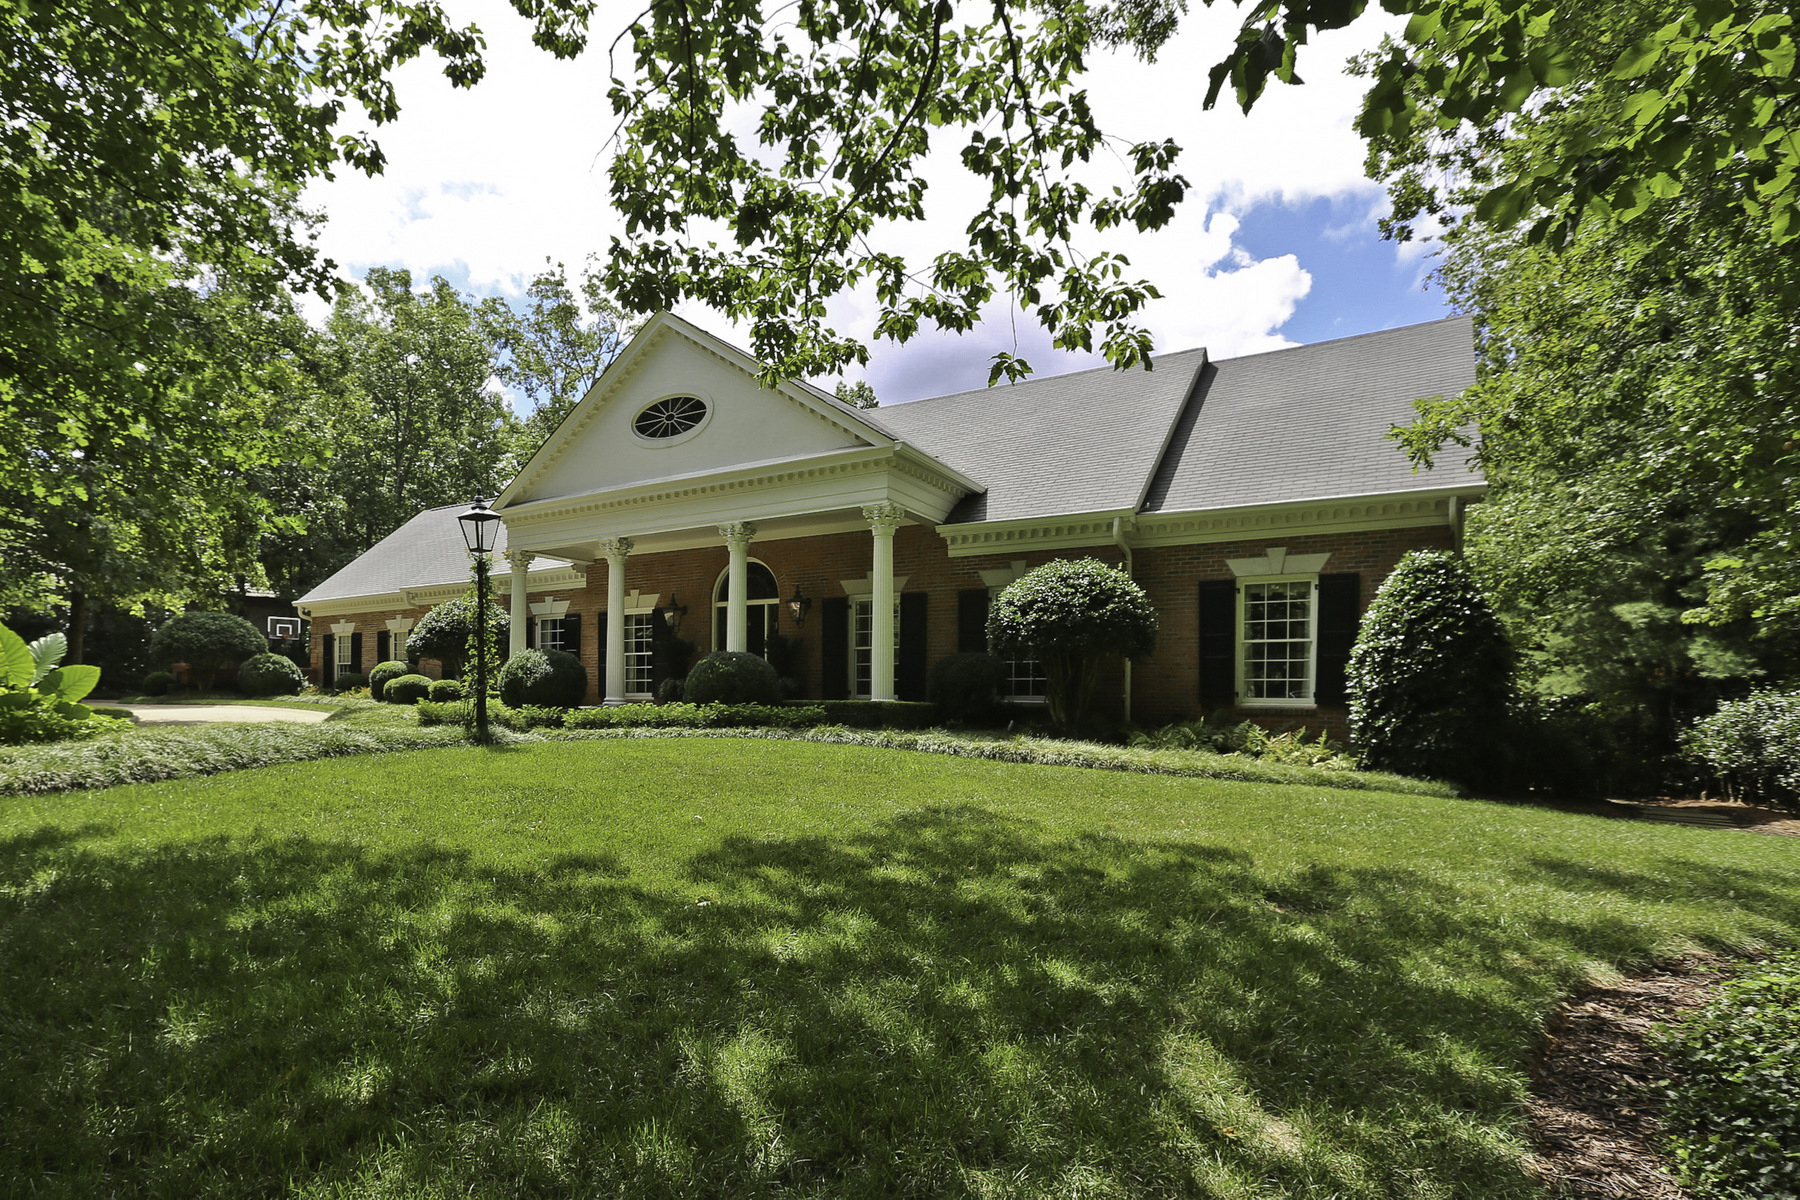 Villa per Vendita alle ore Renovated Brick Home In Sandy Springs With Pool And English Gardens 5660 Glen Errol Road Atlanta, Georgia 30327 Stati Uniti